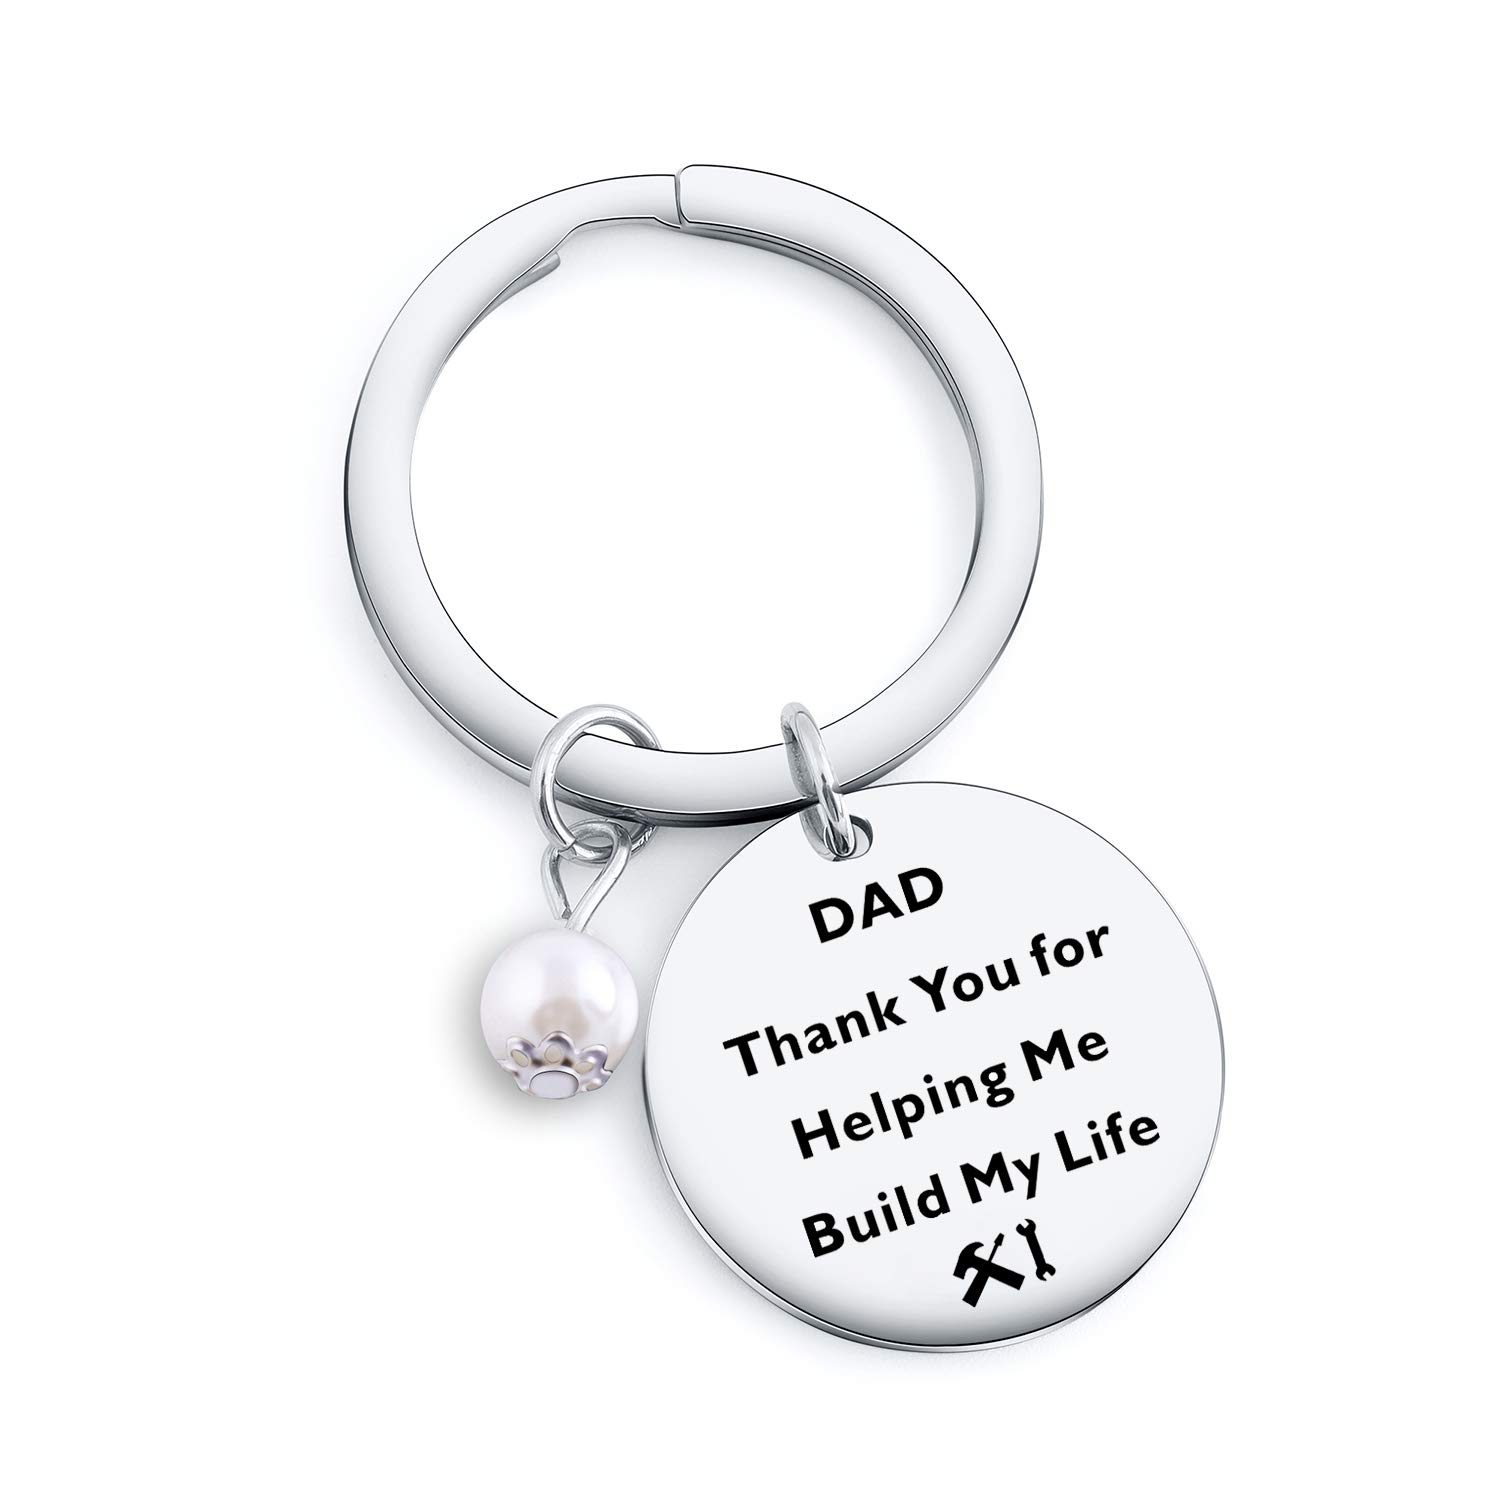 Dad Keychain Gifts for Dad Mom Grandpa Uncle Teachers Thank You for Helping Me Build My Life Keychain